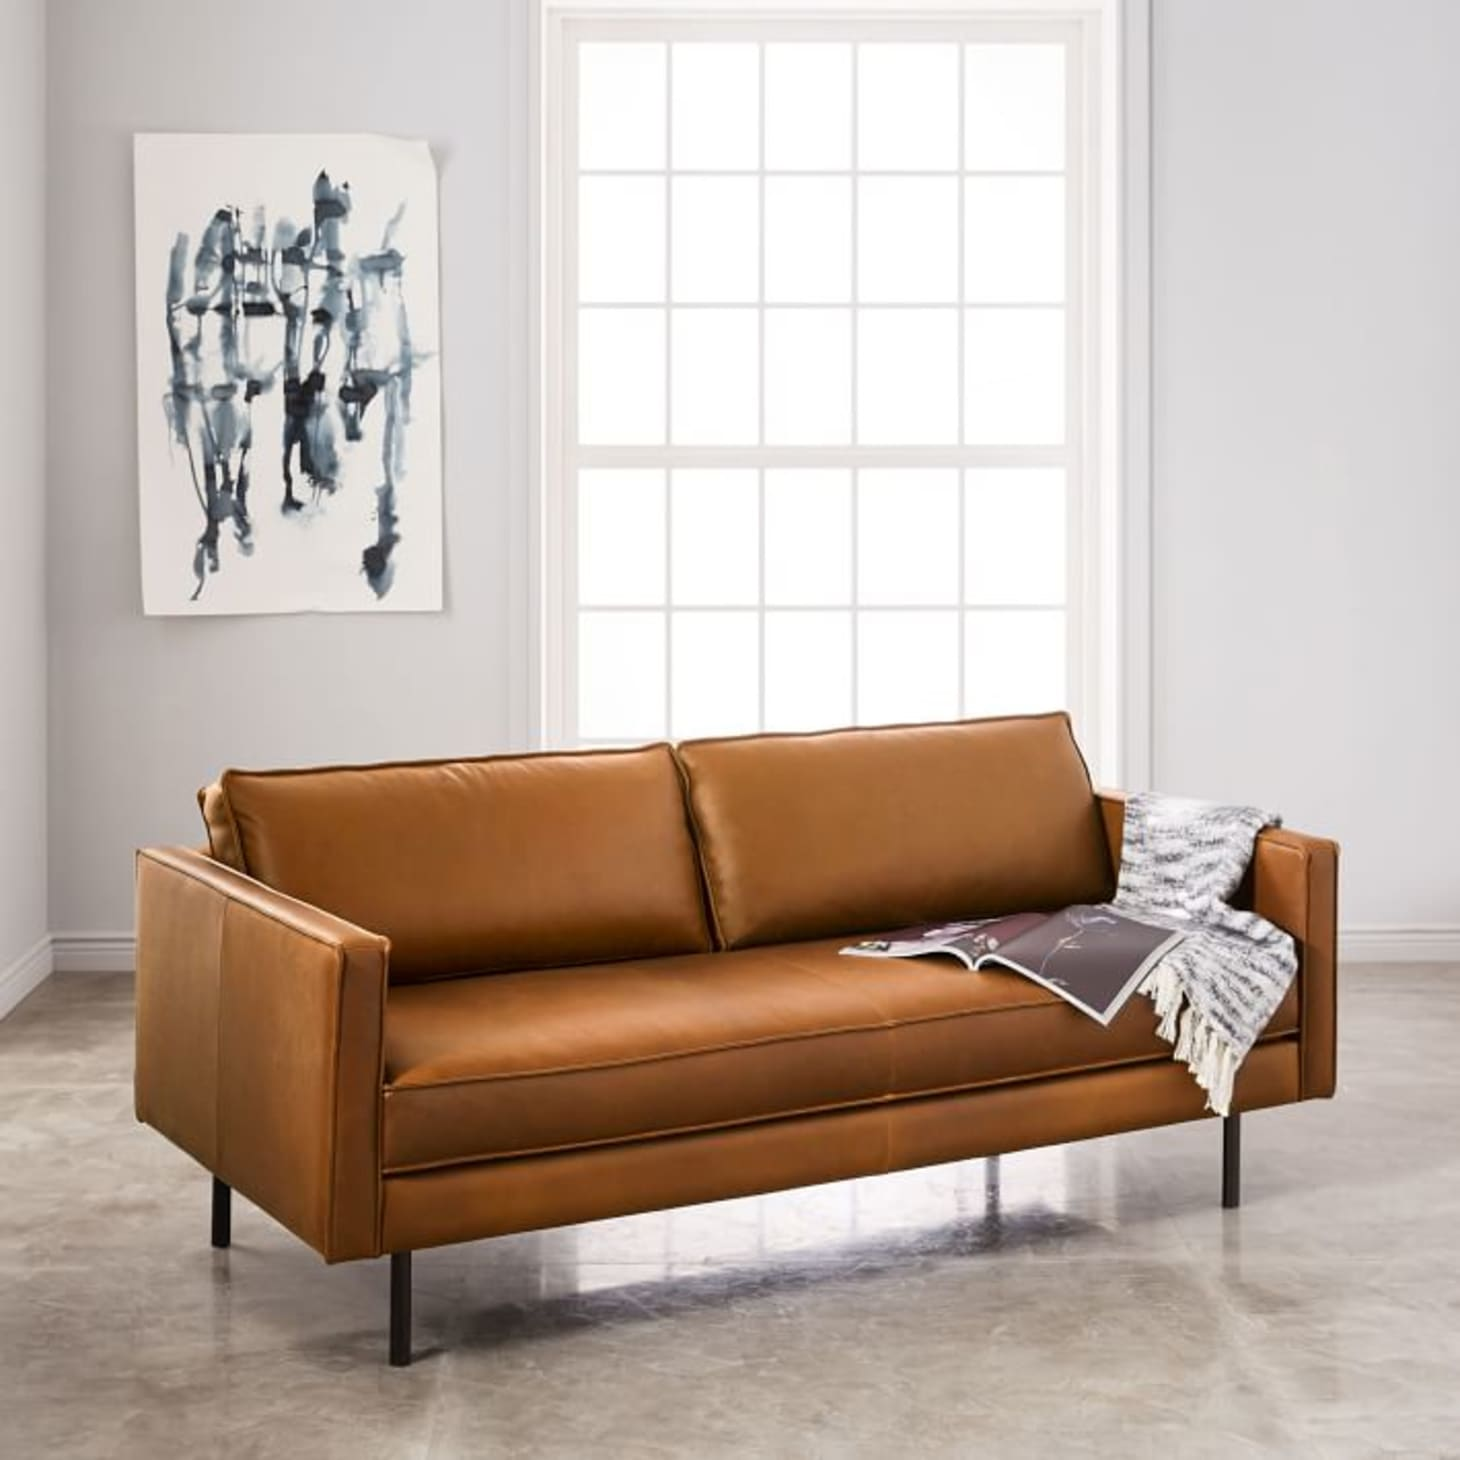 Tan Leather Sofa Trend - Caramel Leather Sofa | Apartment Therapy